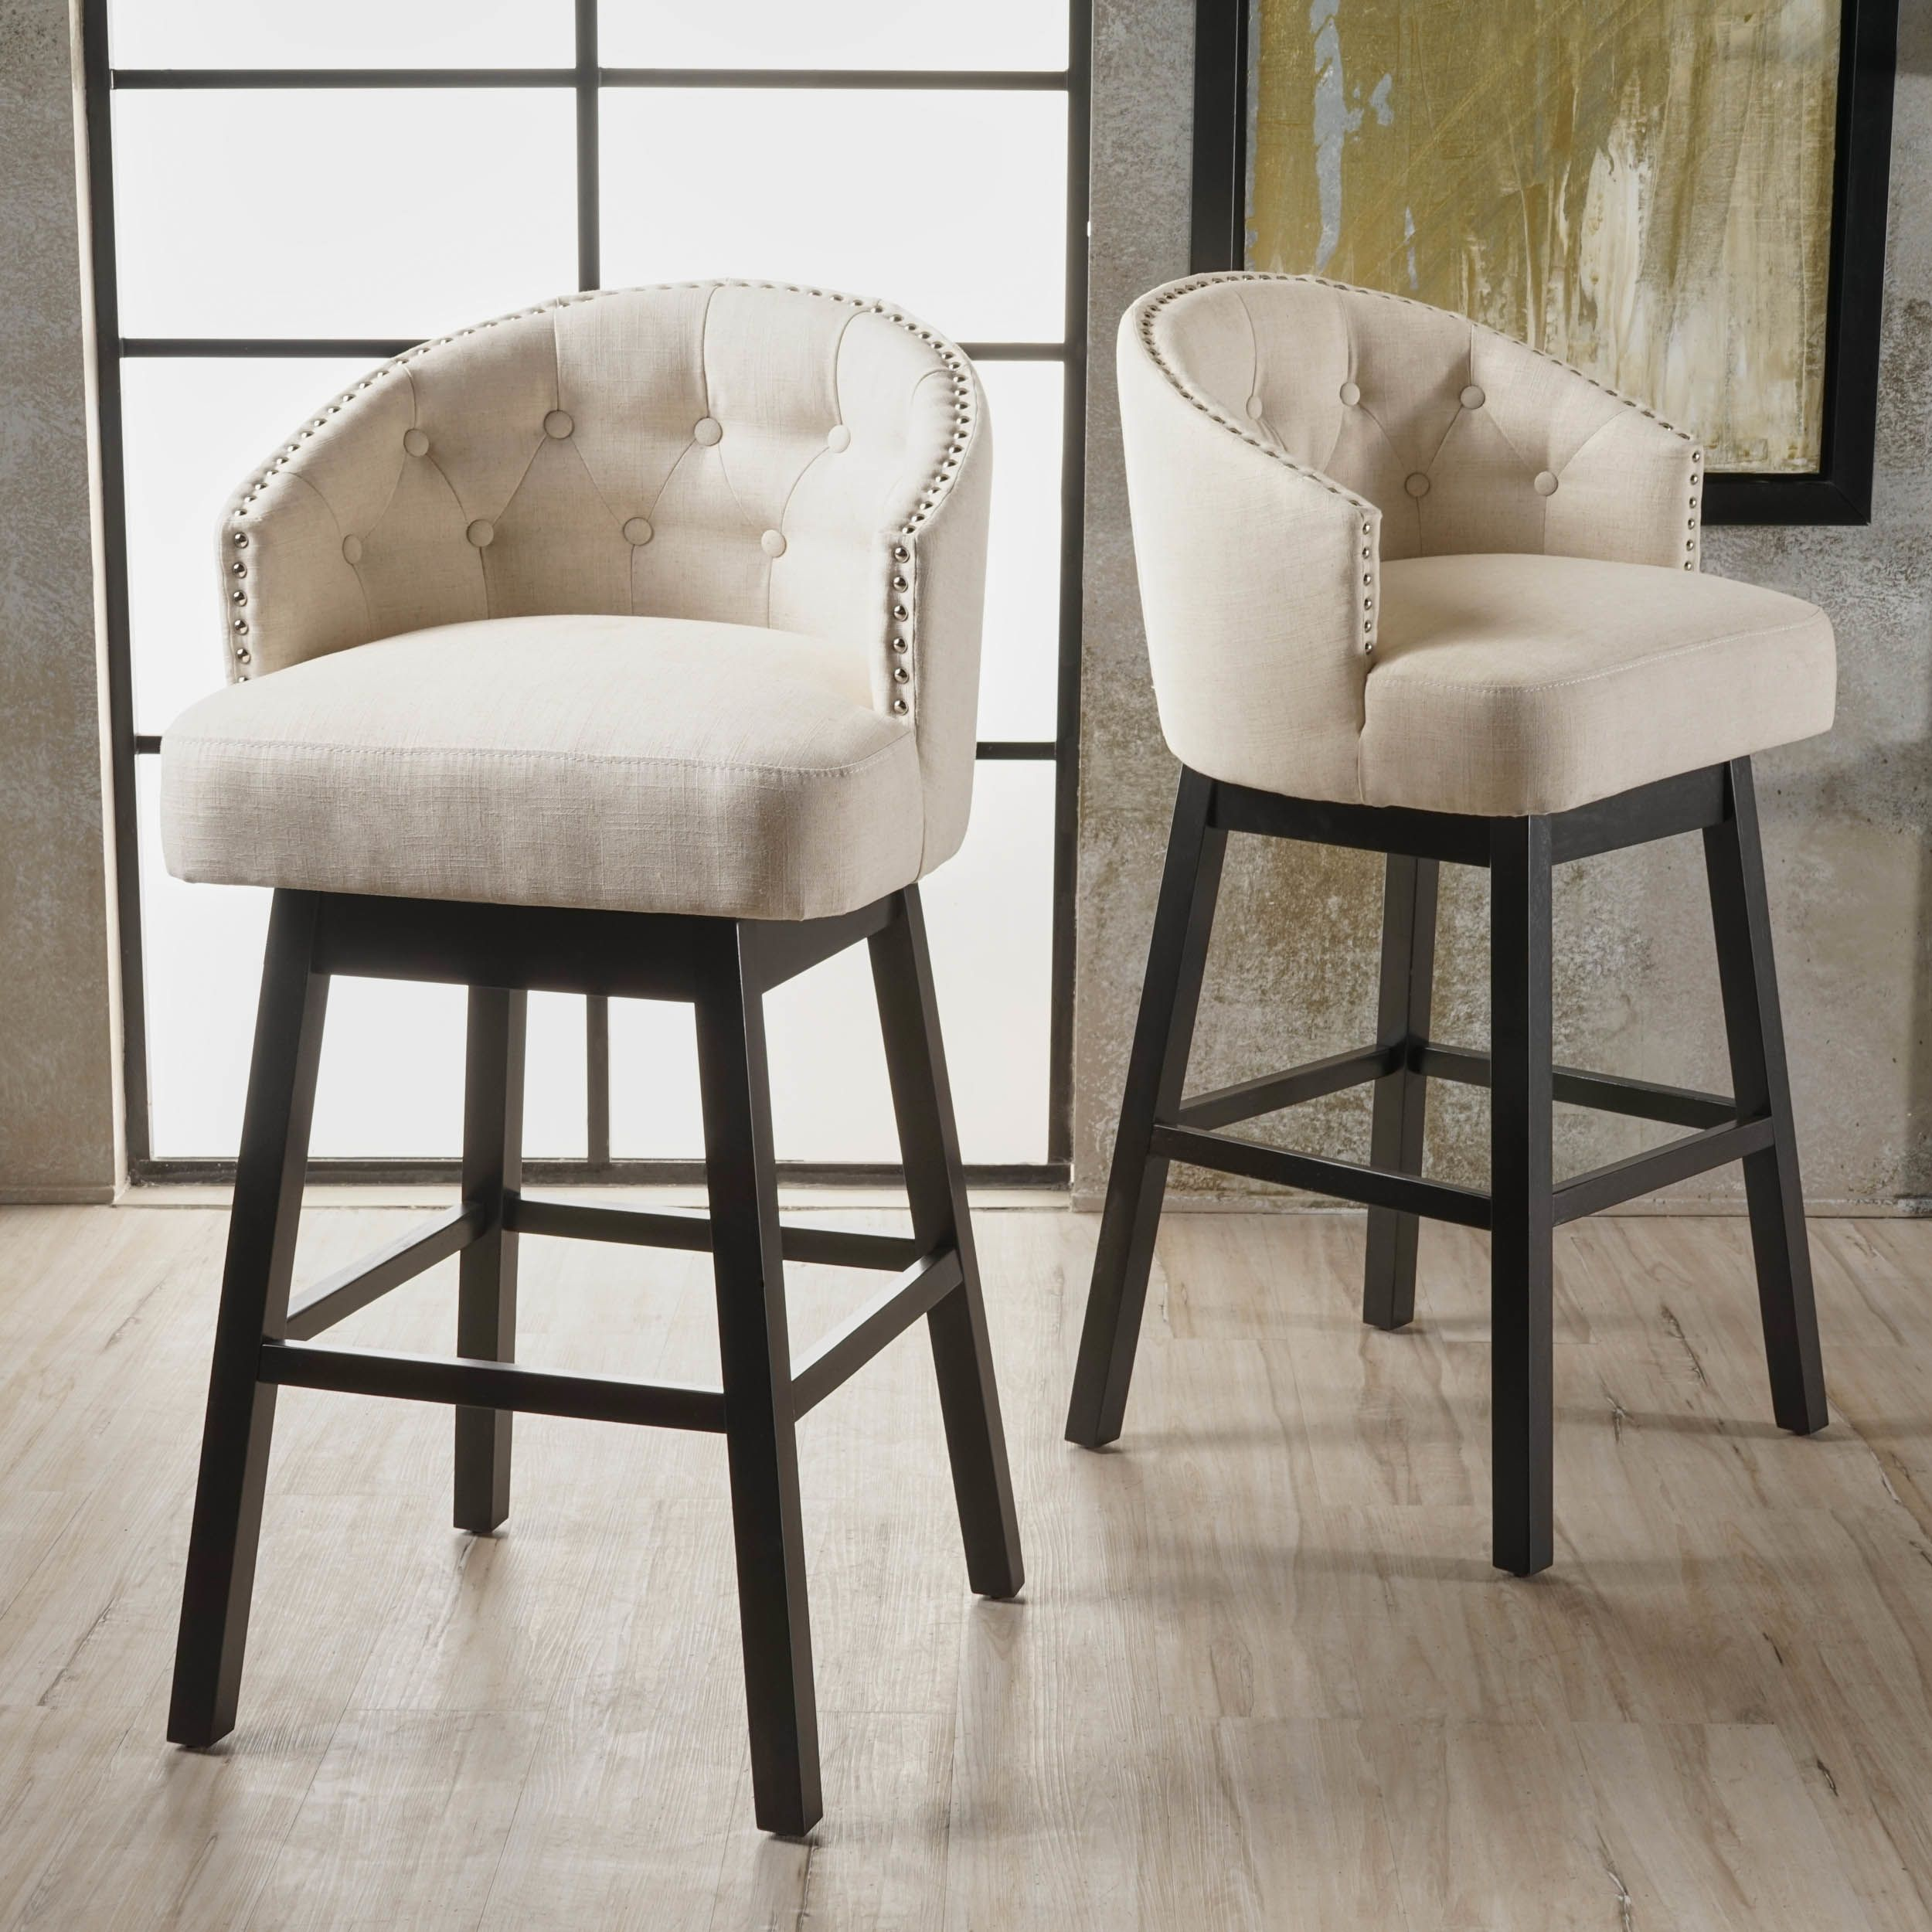 Pin On Stools Bar Height